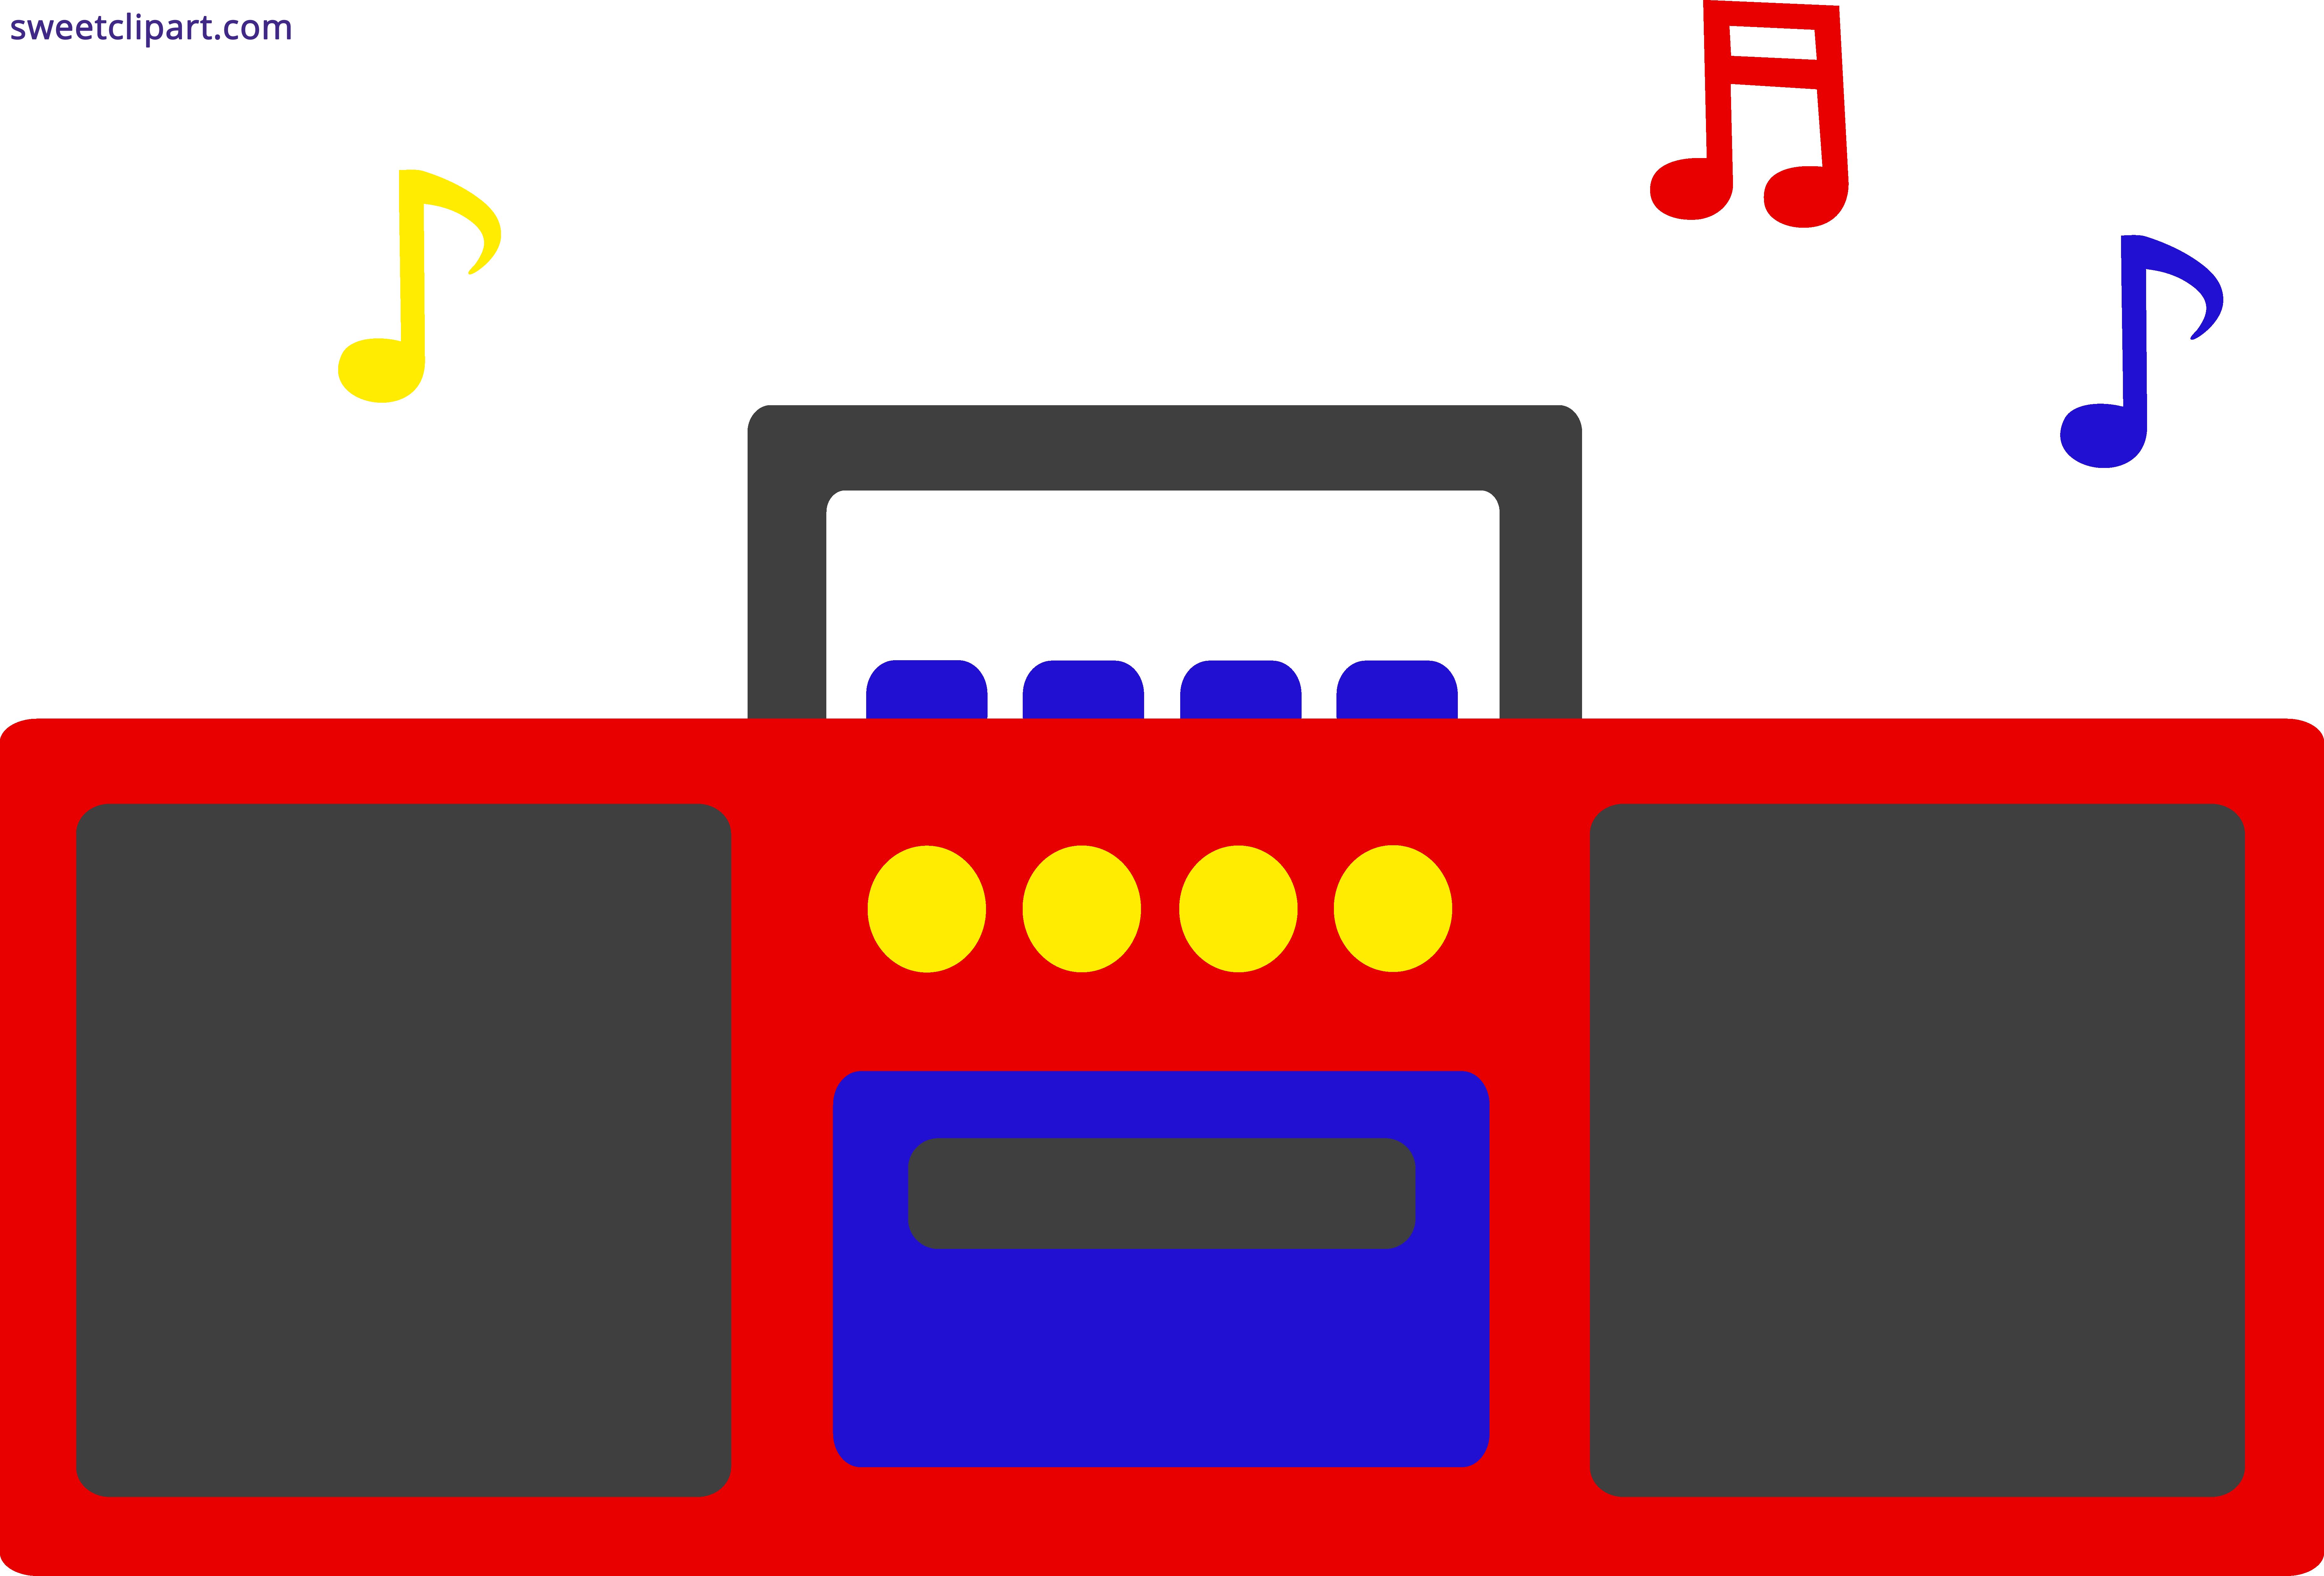 Clipart bus rectangle. Radio music notes sweet